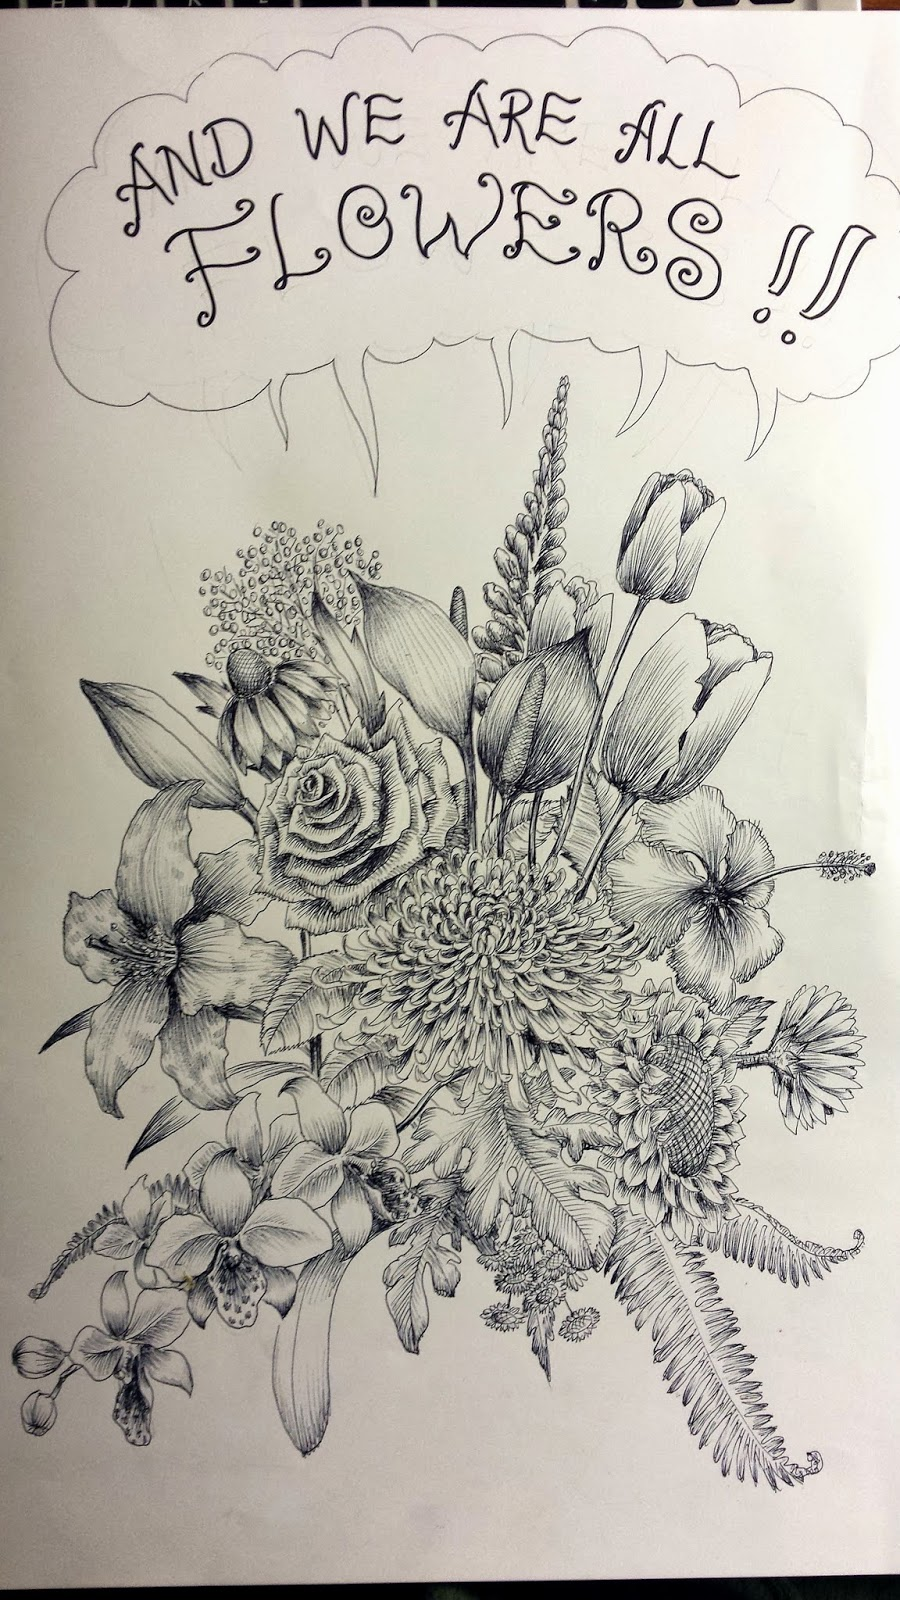 FLOWER POWER - A PEN DRAWING | THE ART OF HOE YEN TAM 浩然之藝, 浩然之氣